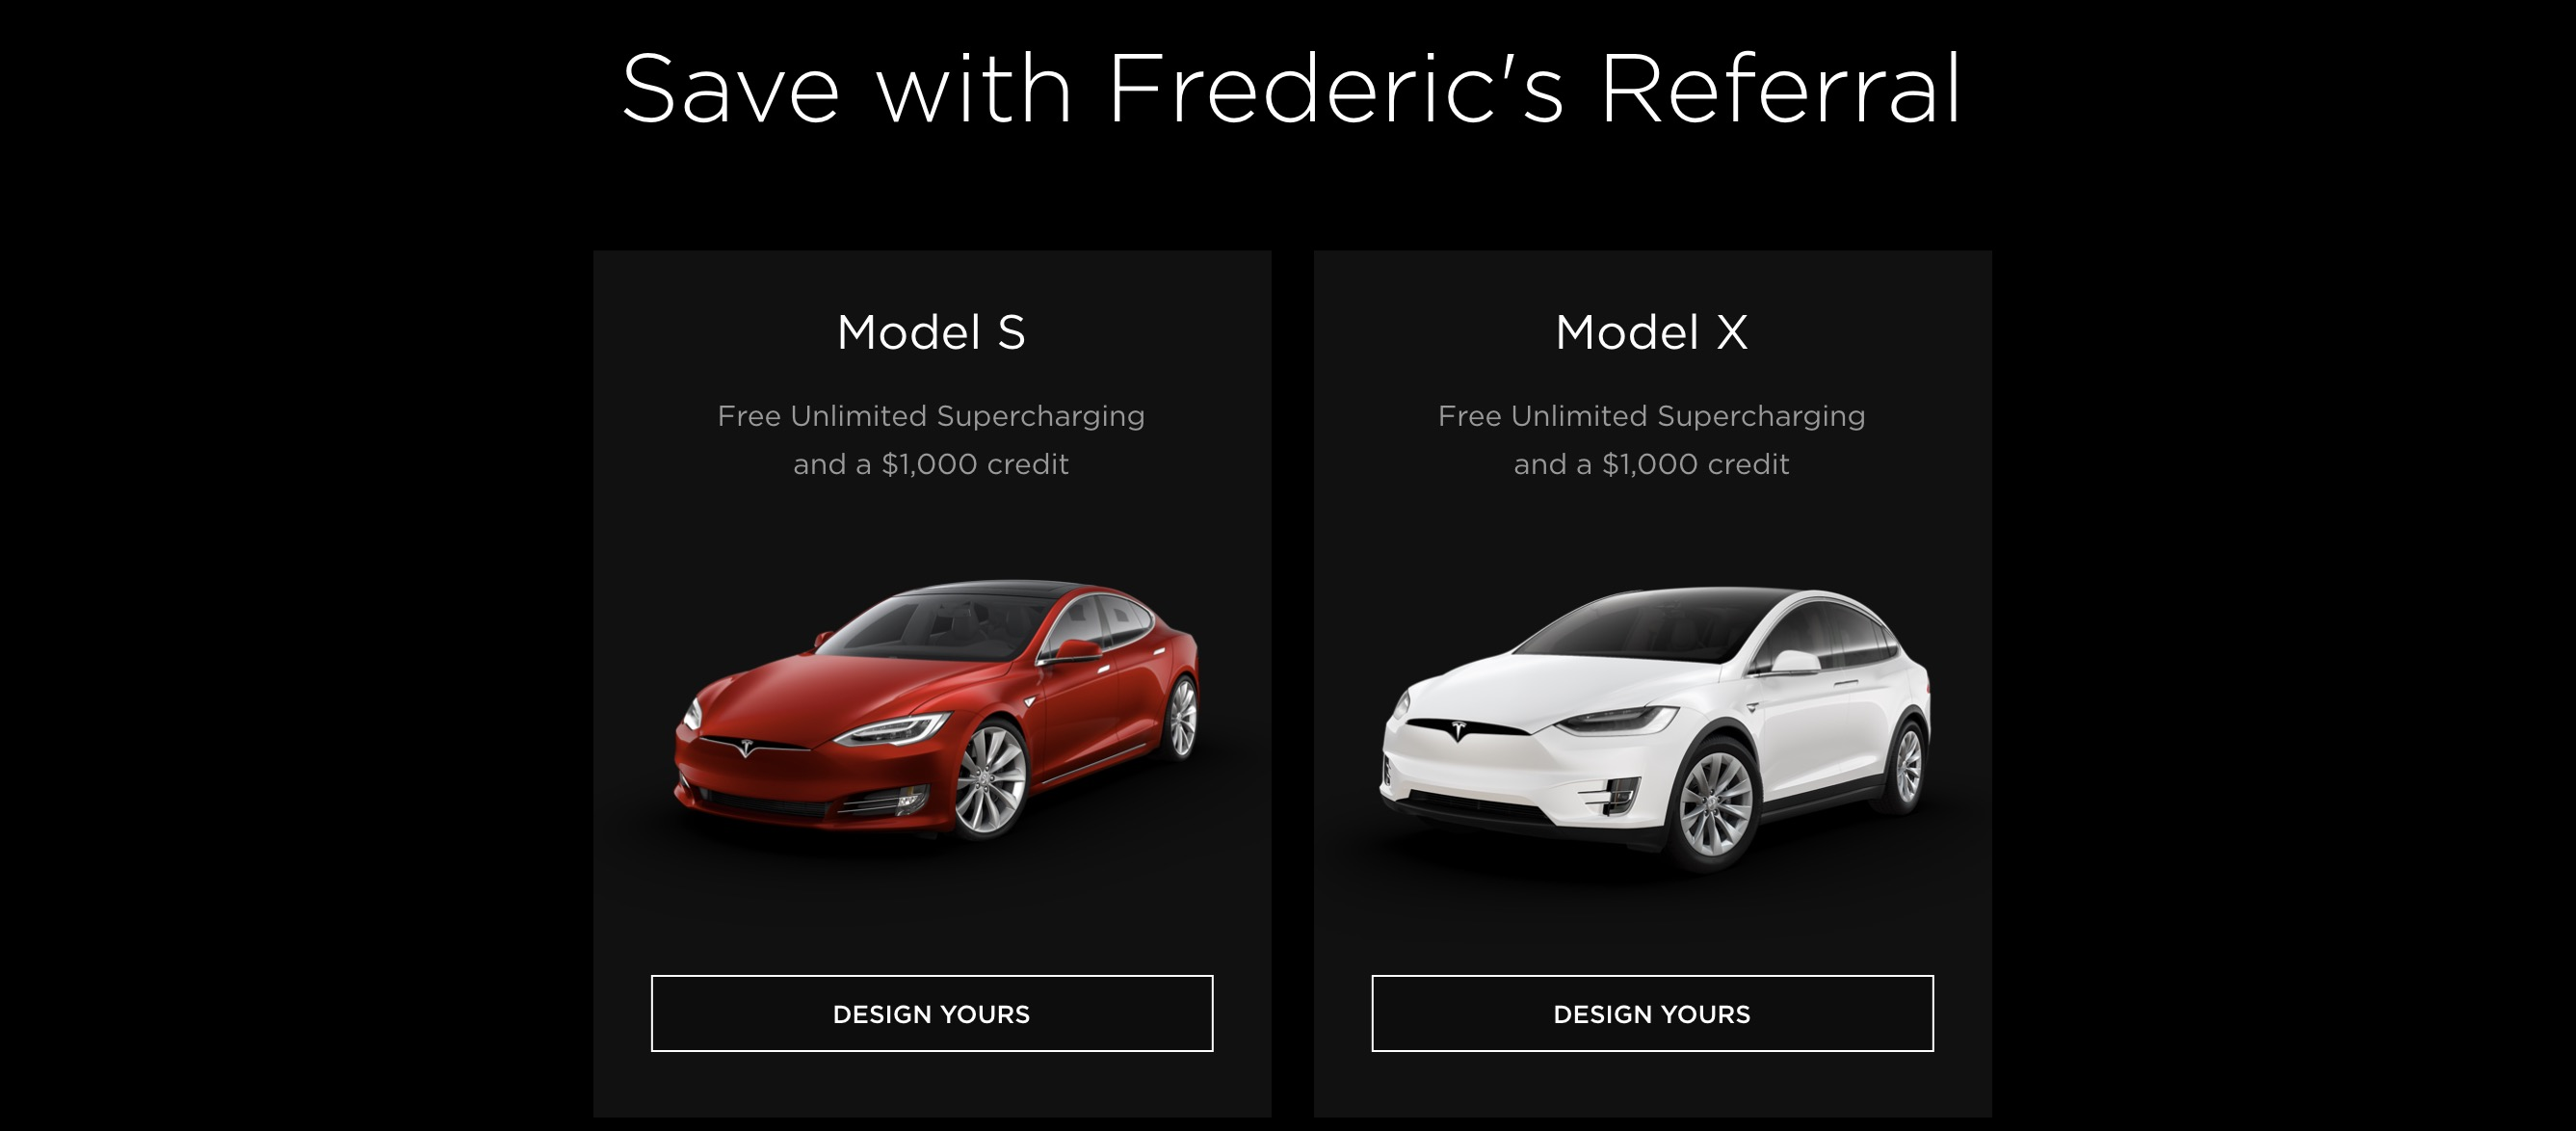 Tesla will end referral program this month, says Elon Musk